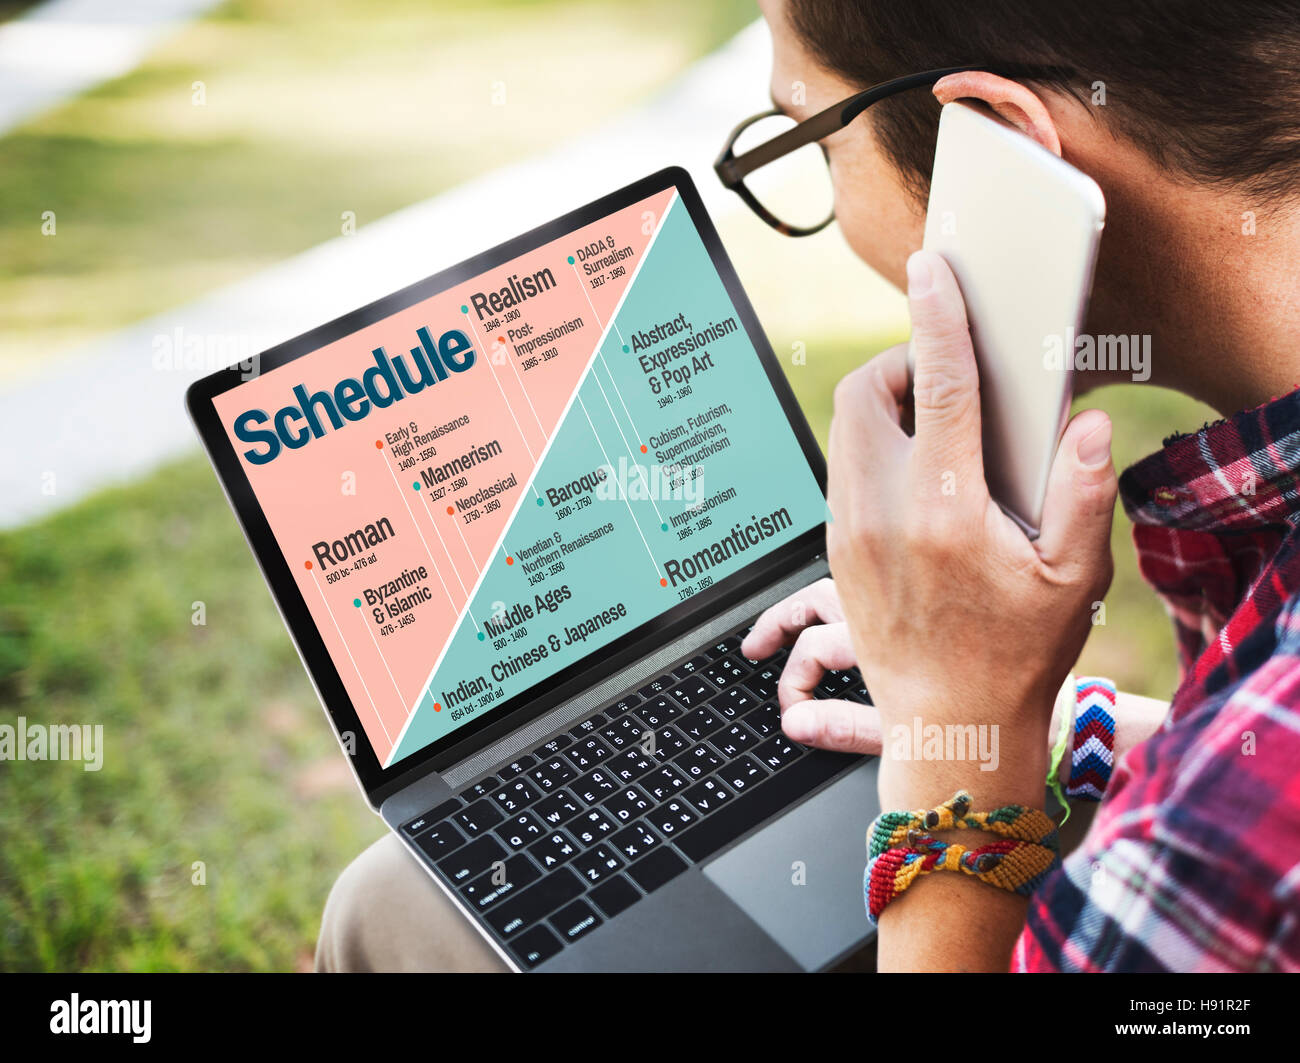 Schedule Art Style History Timeline Stock Photos & Schedule